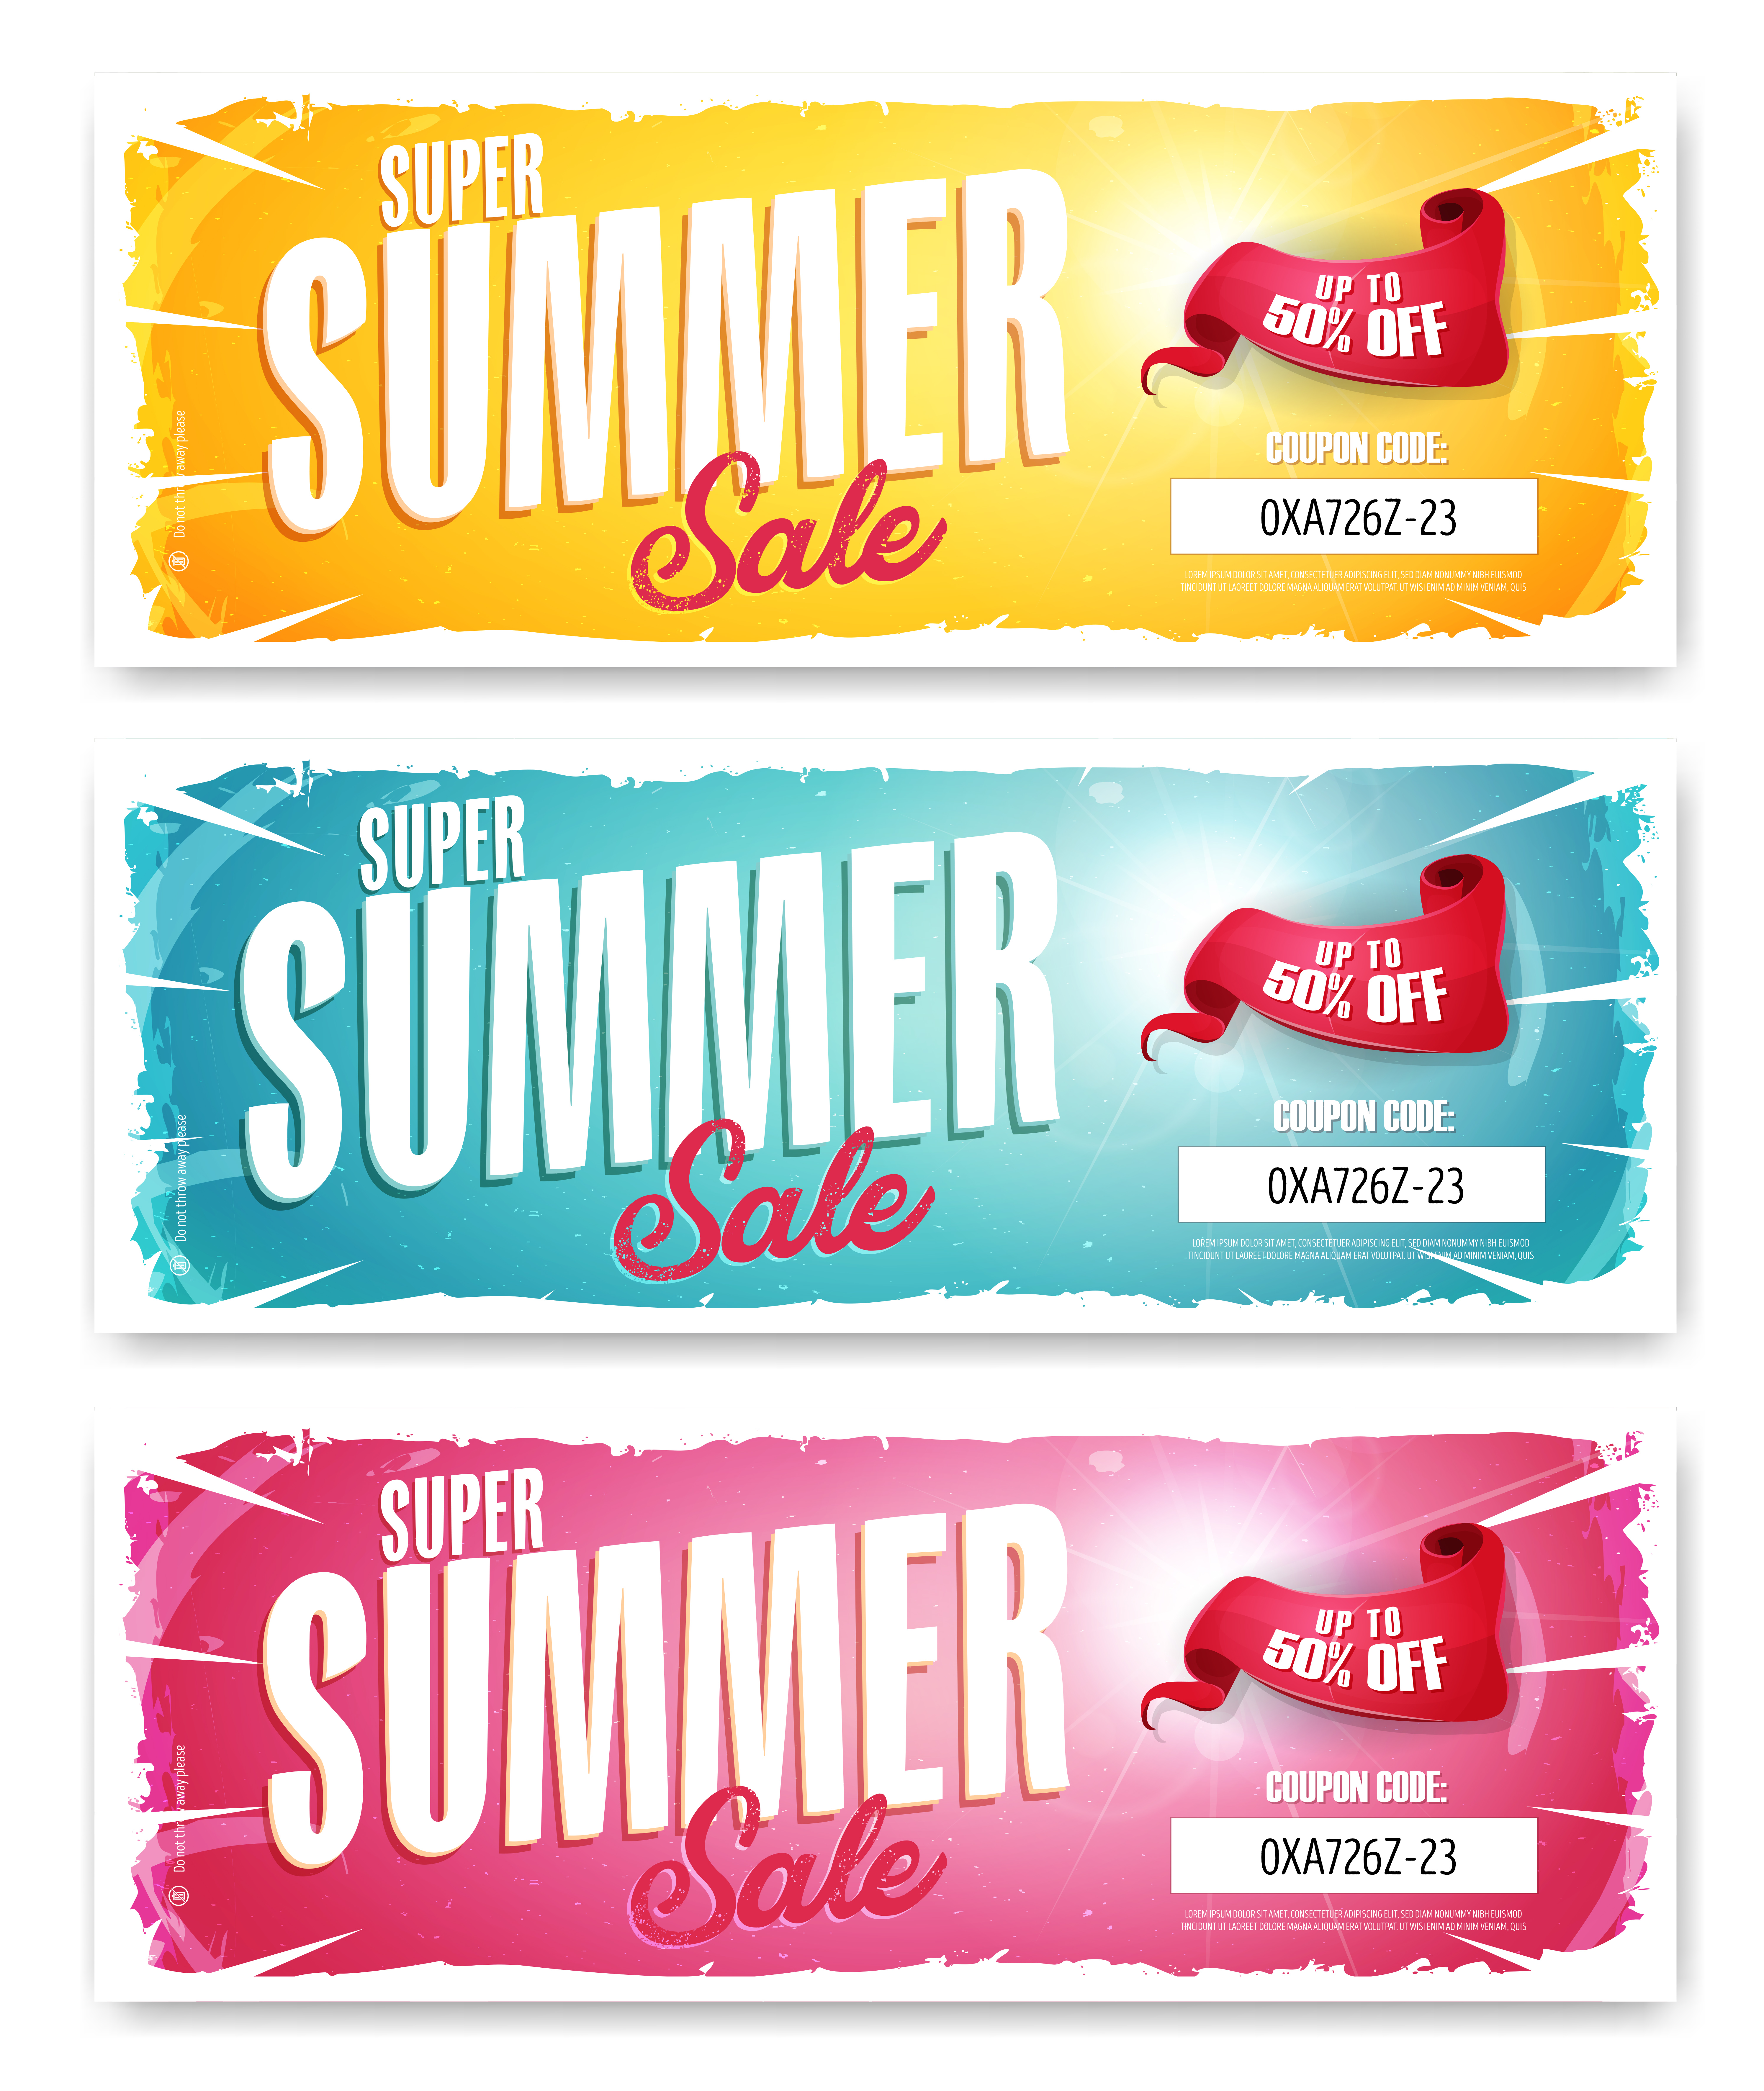 Hot Summer Sale Banner With Coupon Code Download Free Vectors Clipart Graphics Vector Art